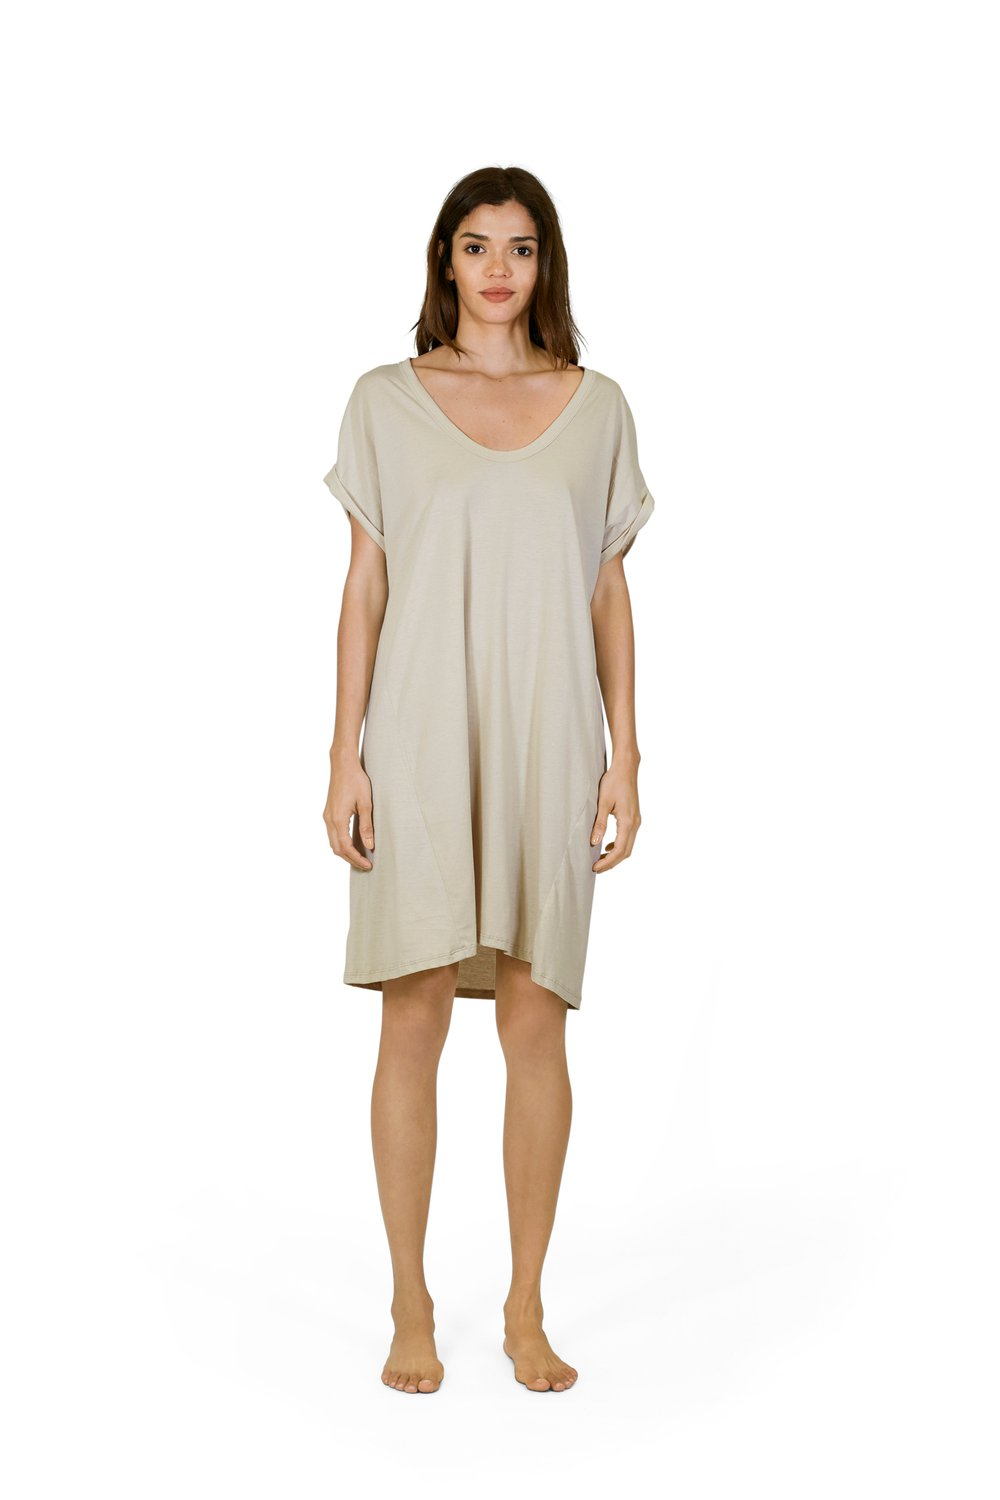 Buy Sanbasics Tee Dress | Buy Sanbasics Fashion Online